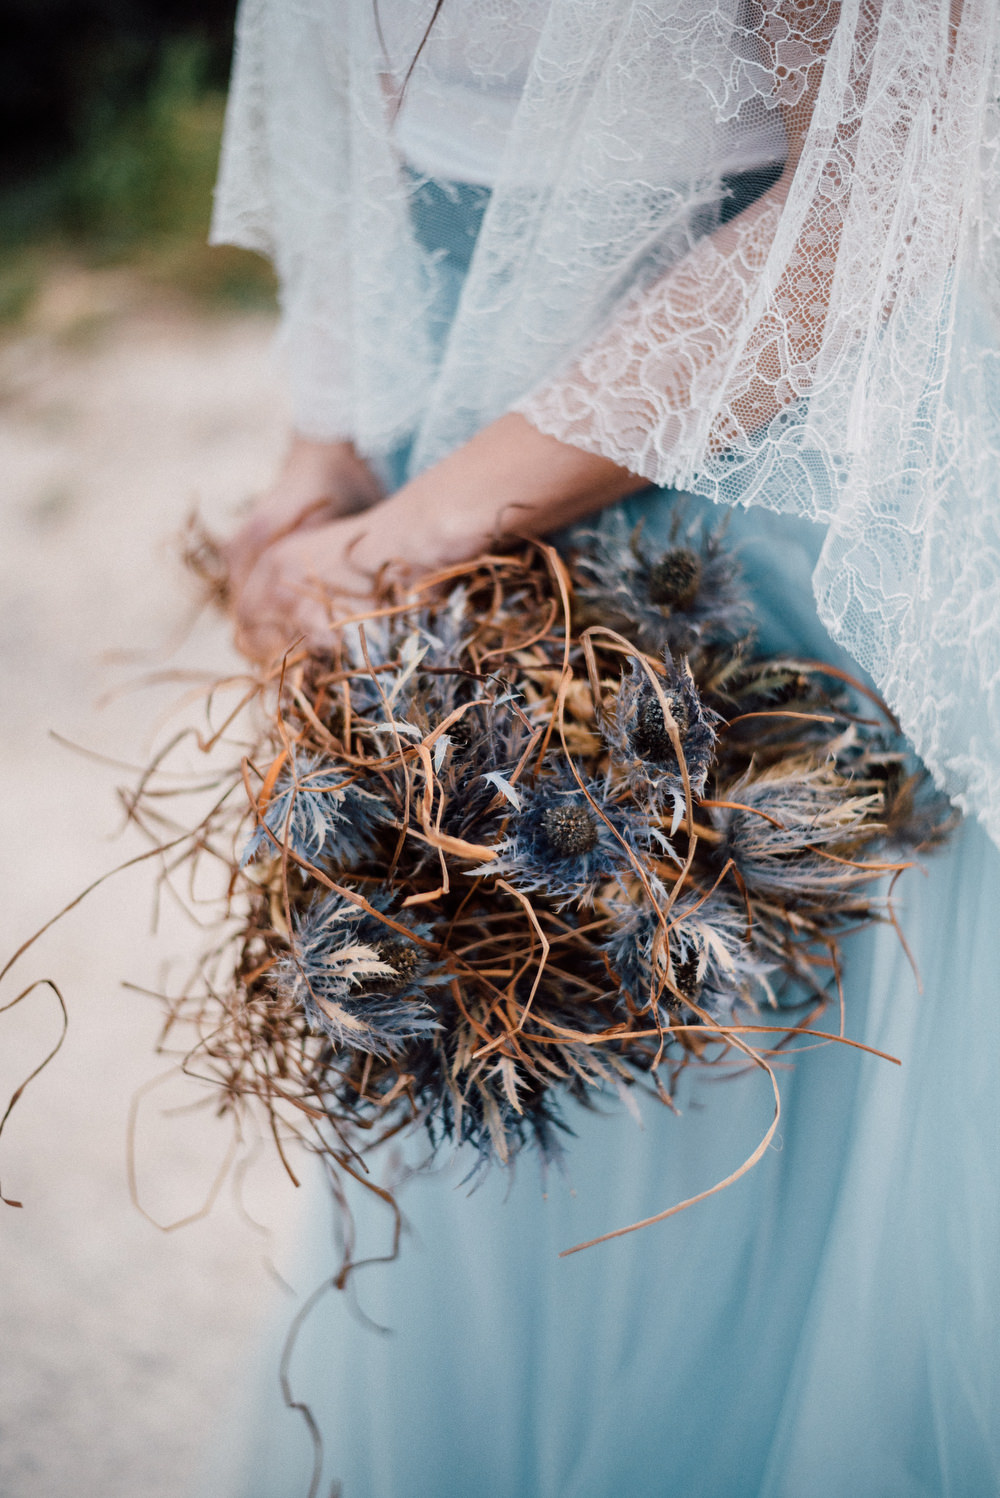 Outdoor Wild Nature Destination Spain Europe Sea Beach Styled Shoot Bride Blue Gown Lace Sea Holly Bouquet | Blue Ibiza Elopement Ideas and Surprise Proposal Serena Genovese Photography